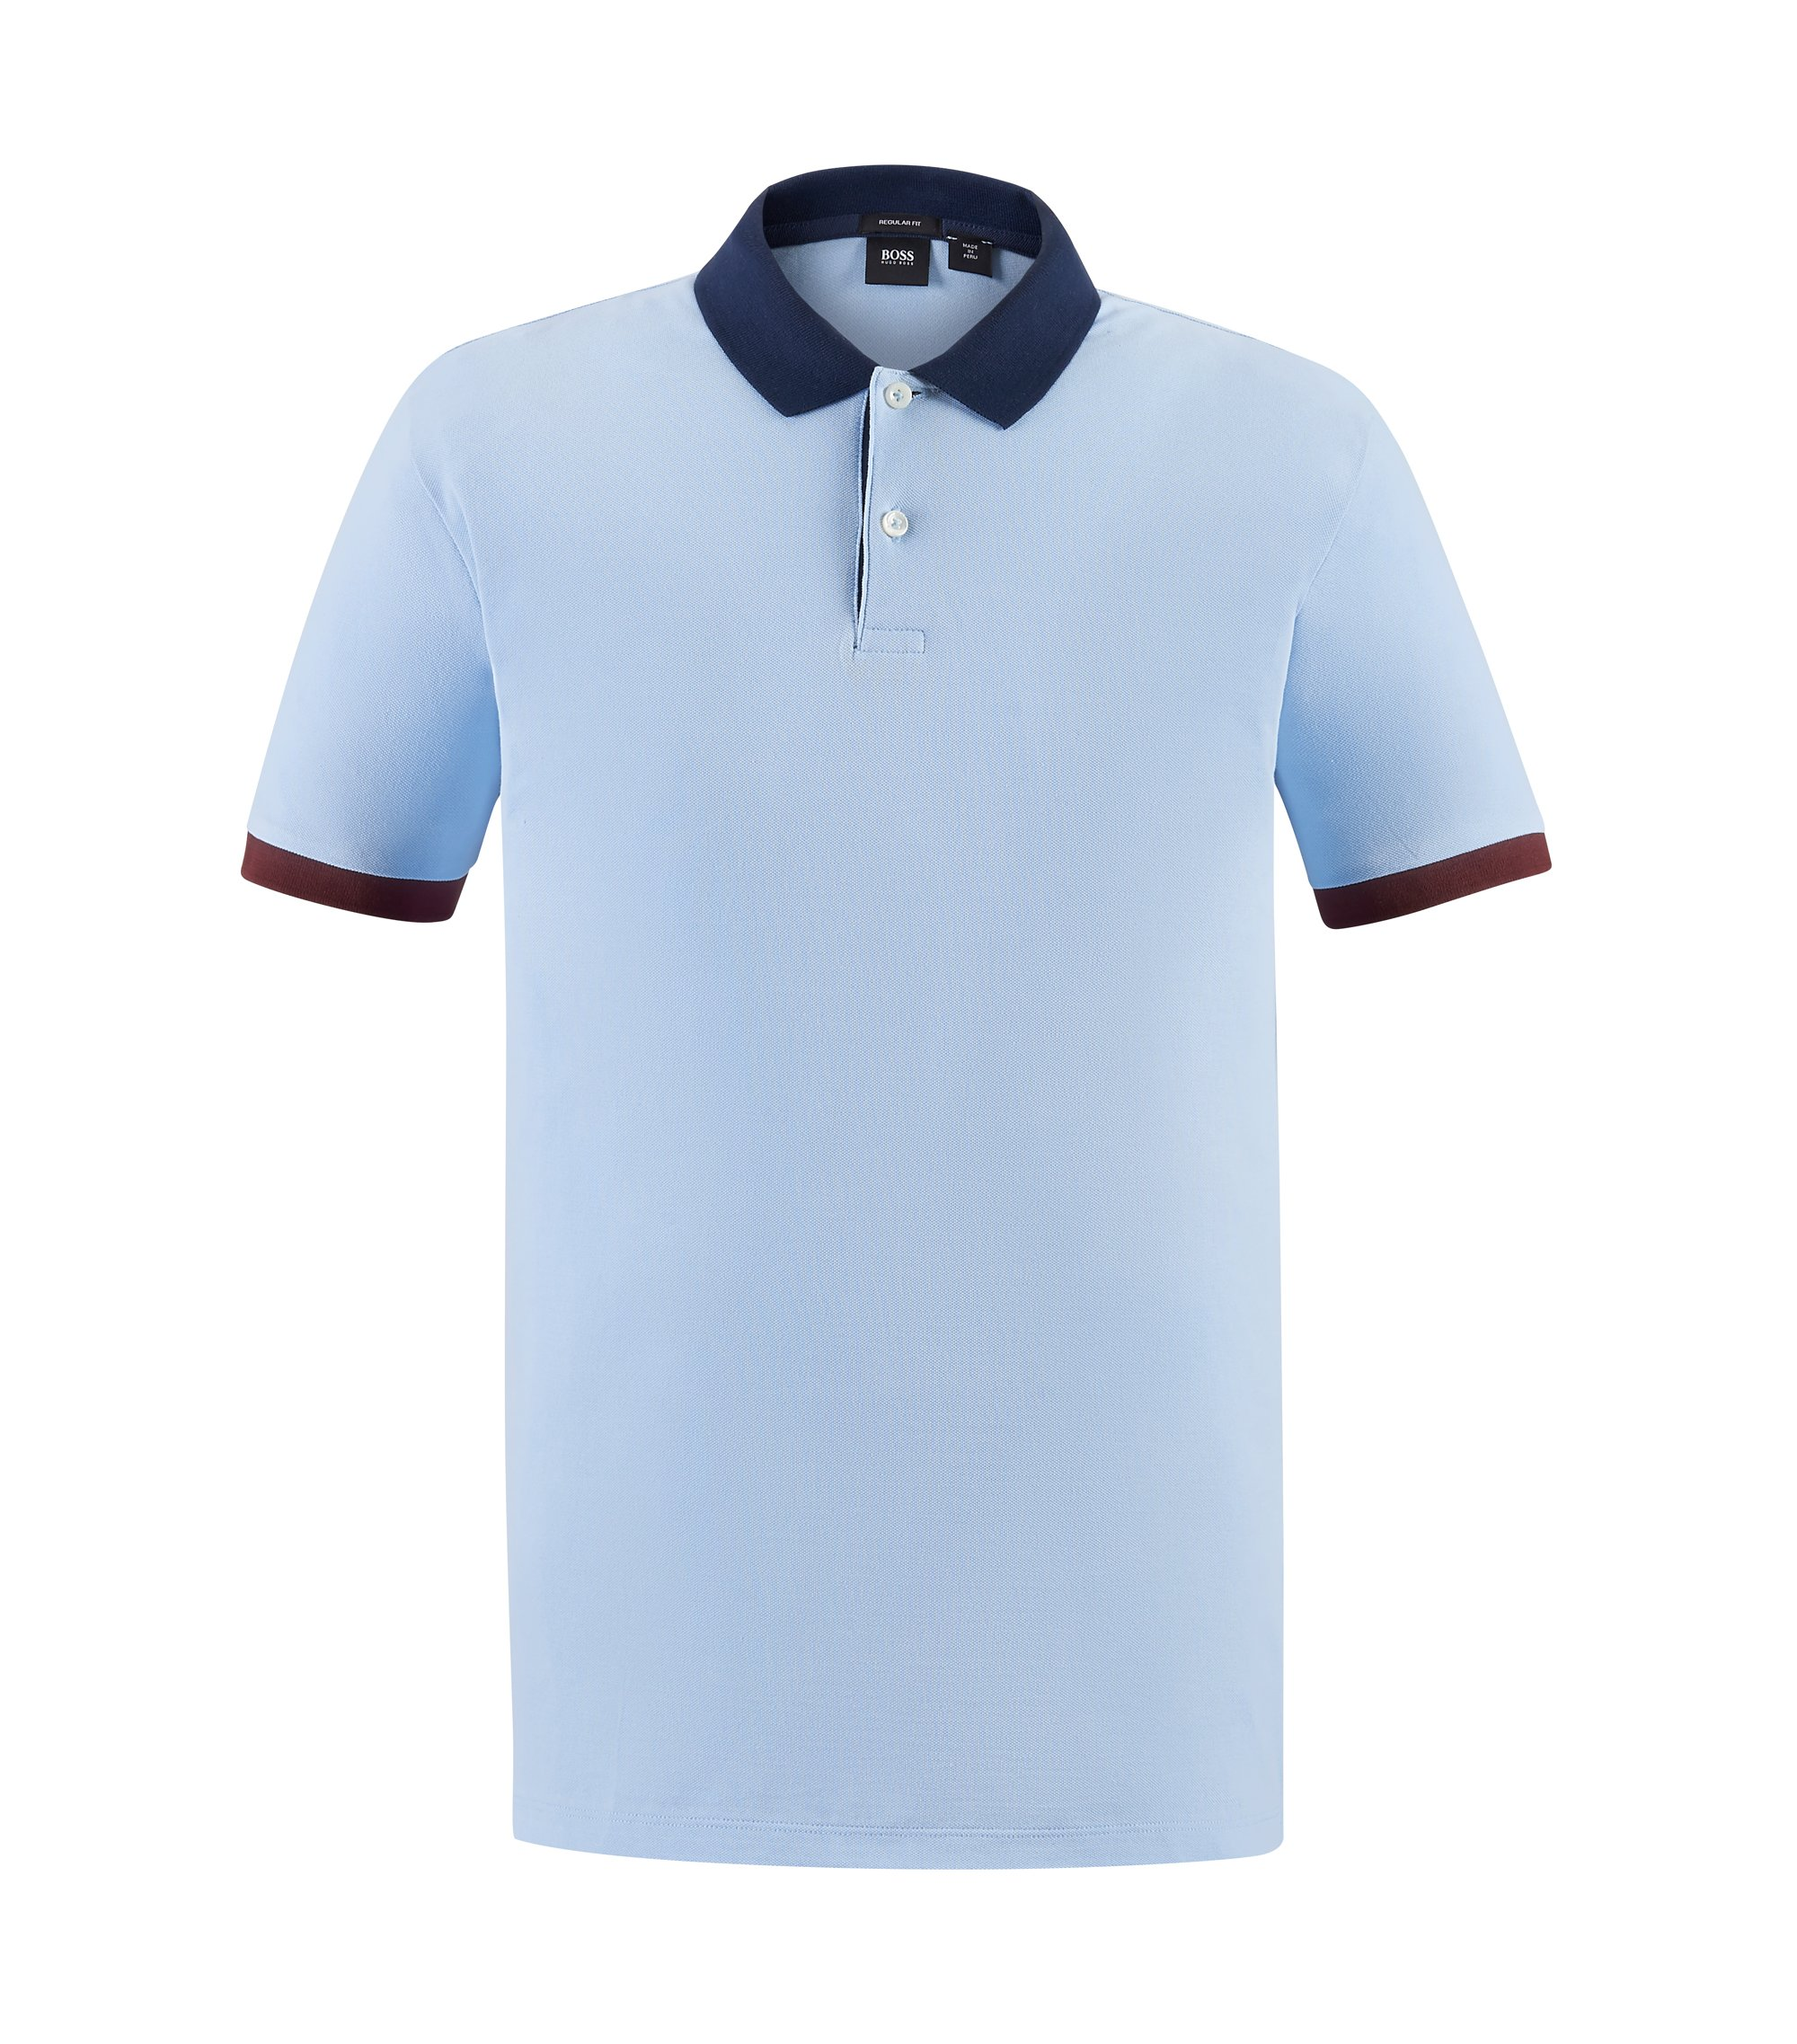 Piqué Pima Cotton Polo Shirt, Regular Fit | Parlay, Dark Blue